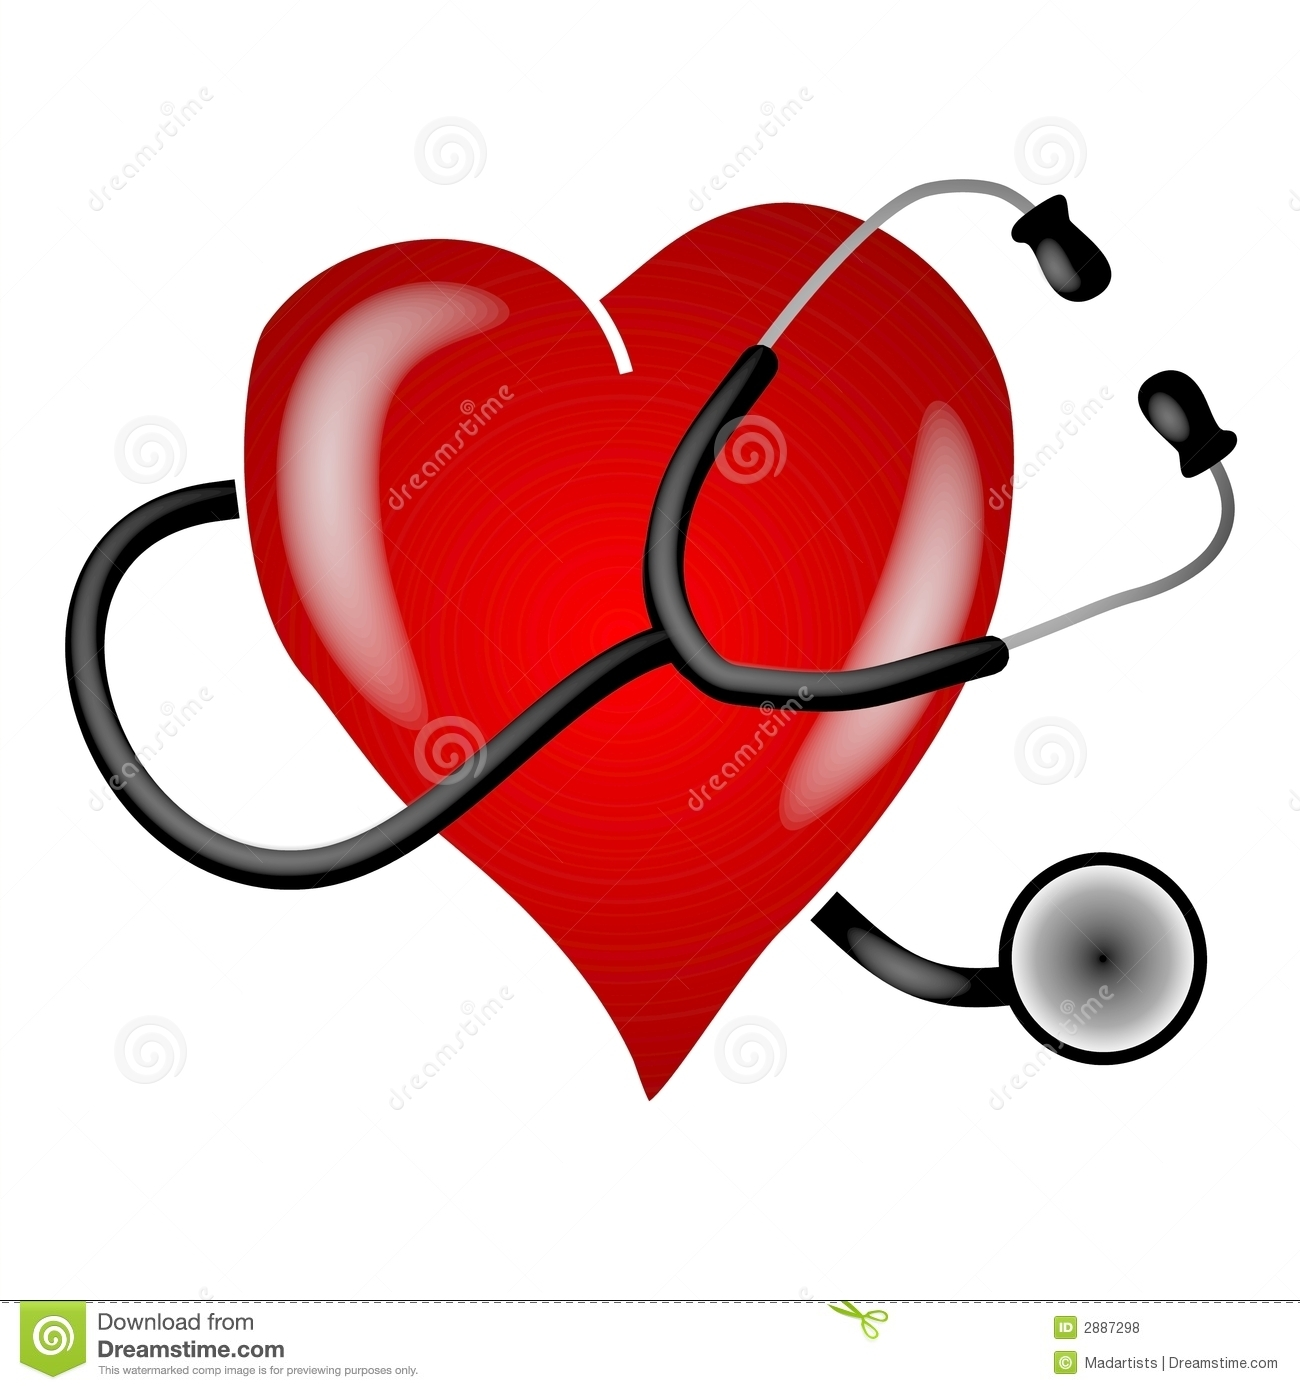 Heart doctor clipart.